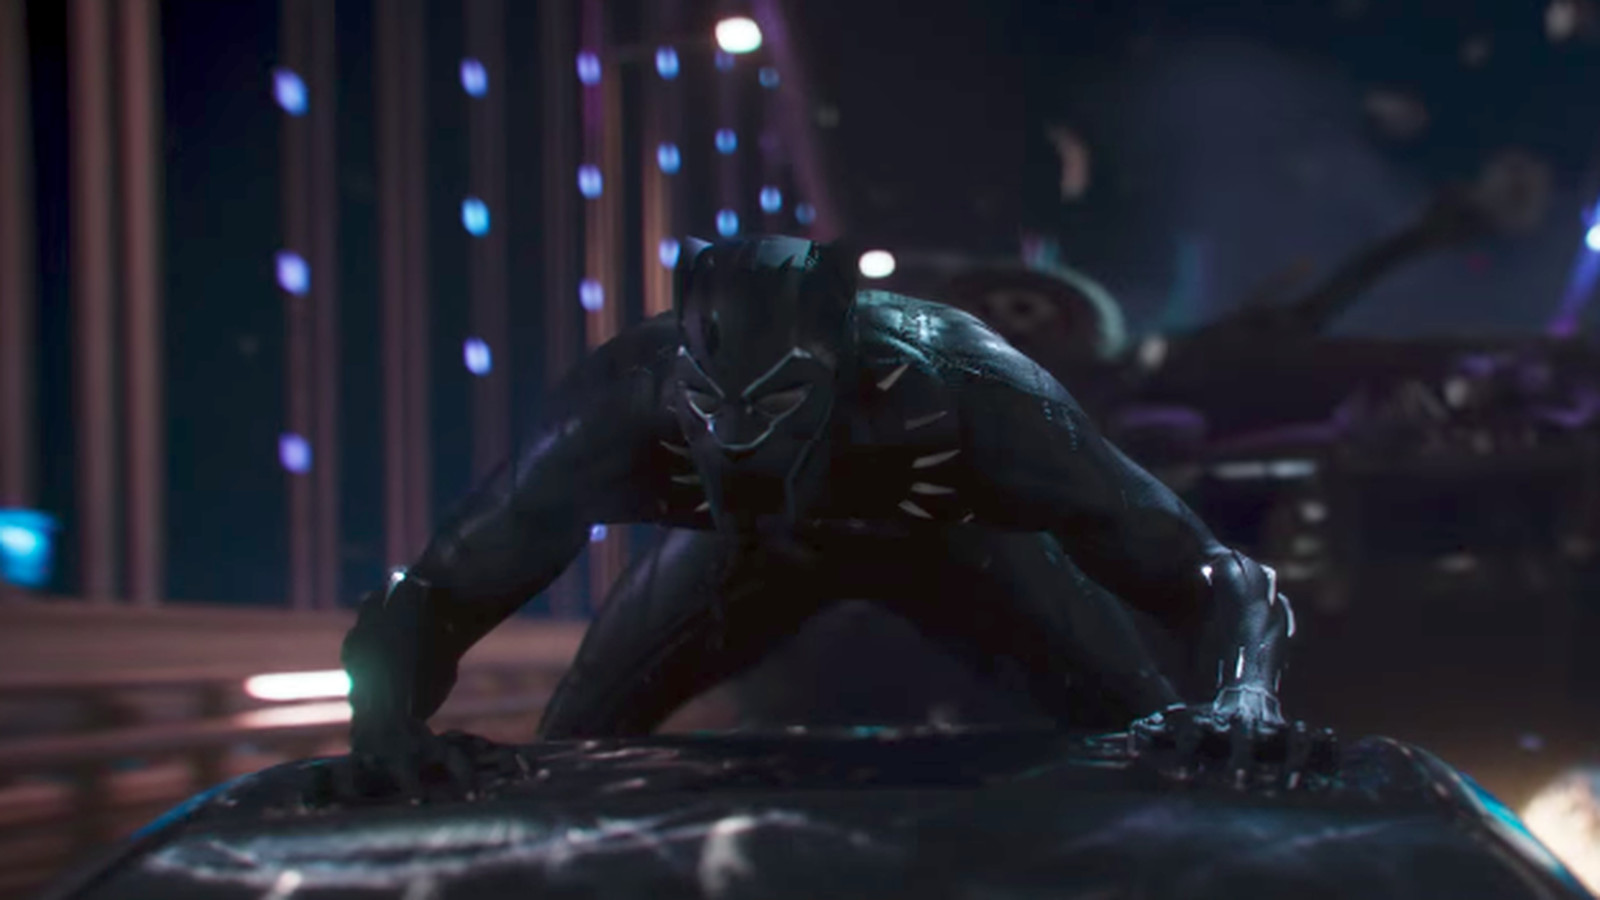 Watch the first teaser trailer for Black Panther - The Verge